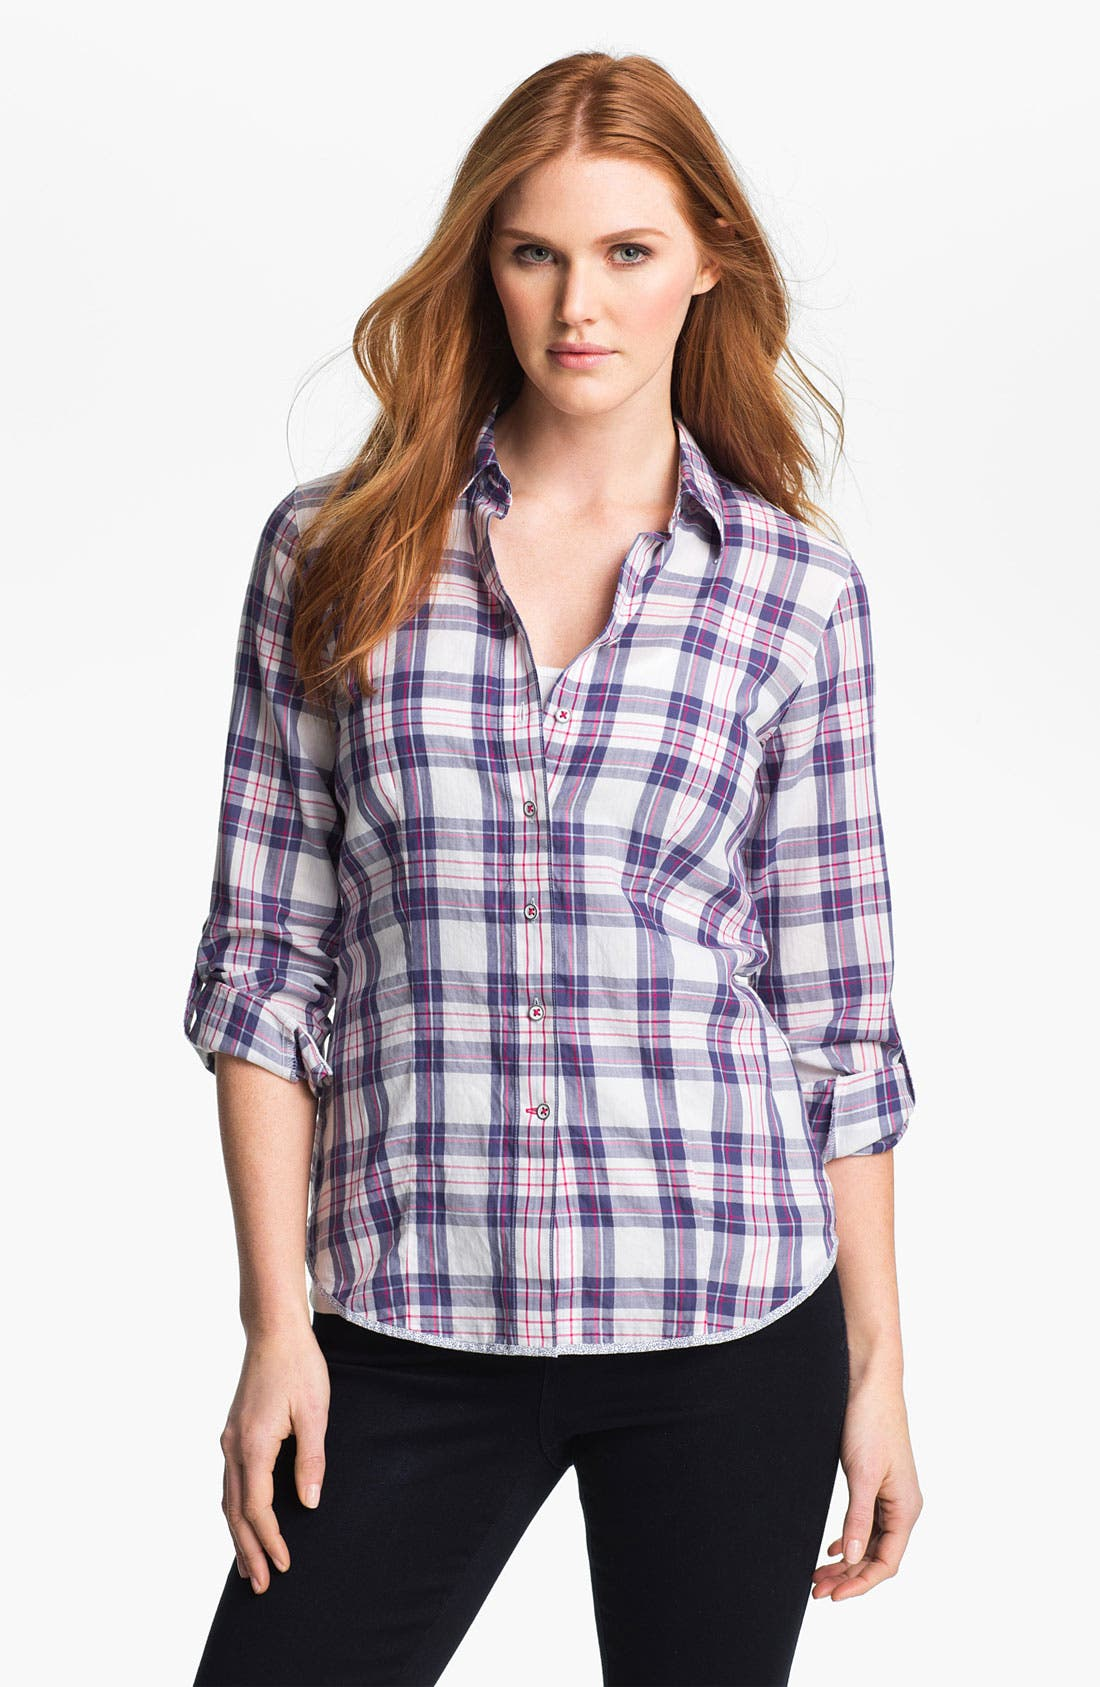 Main Image - Shirt 469 Plaid Poplin Shirt